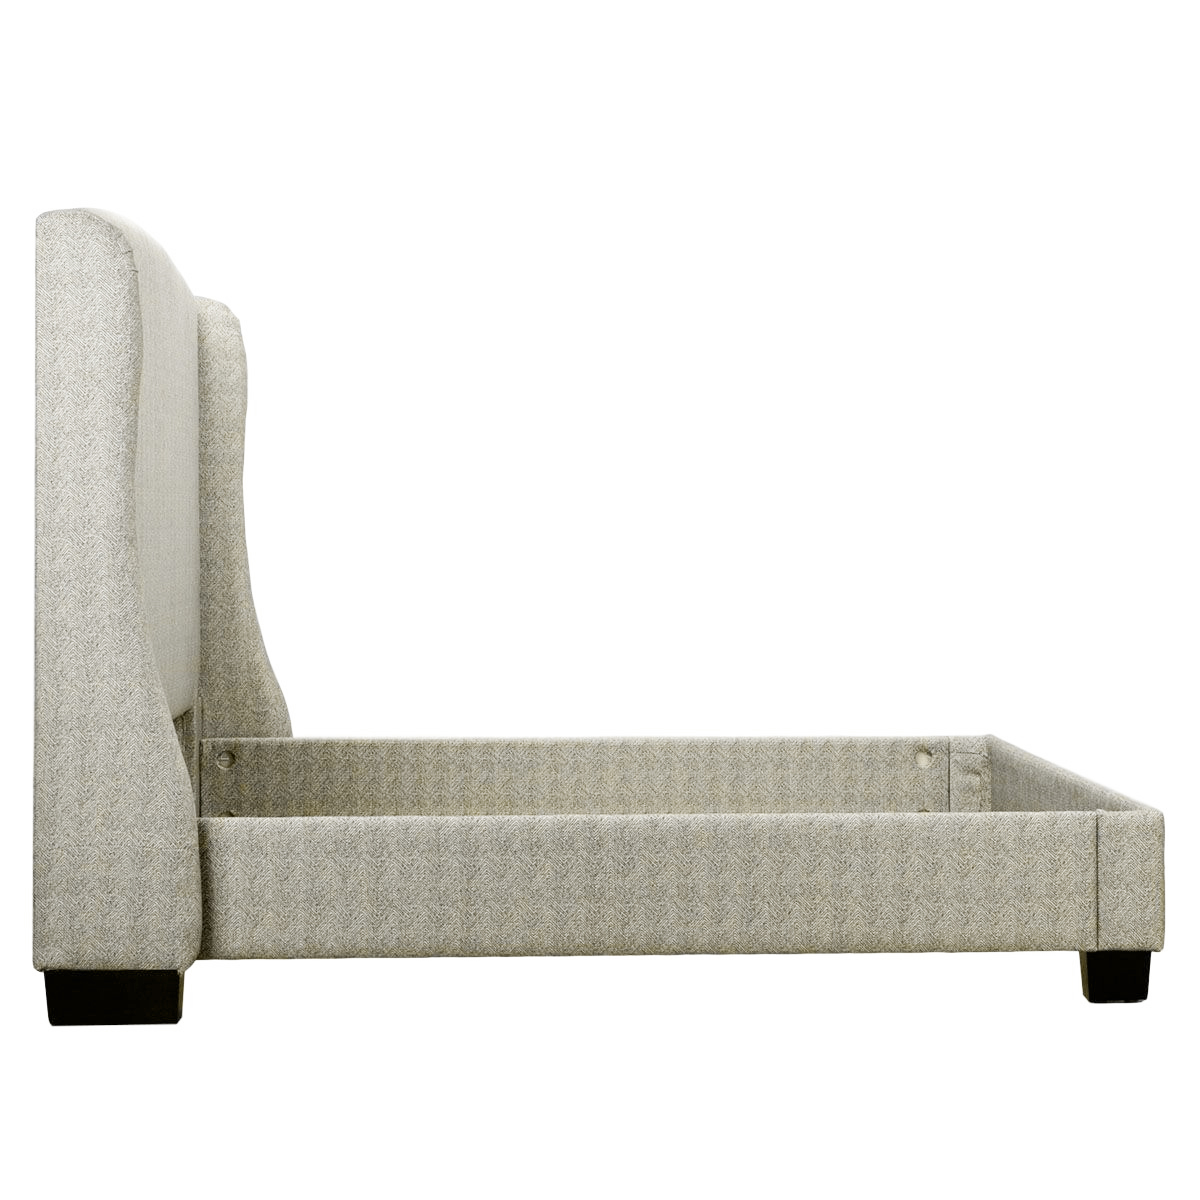 Picture of Paris Upholstered King Bed